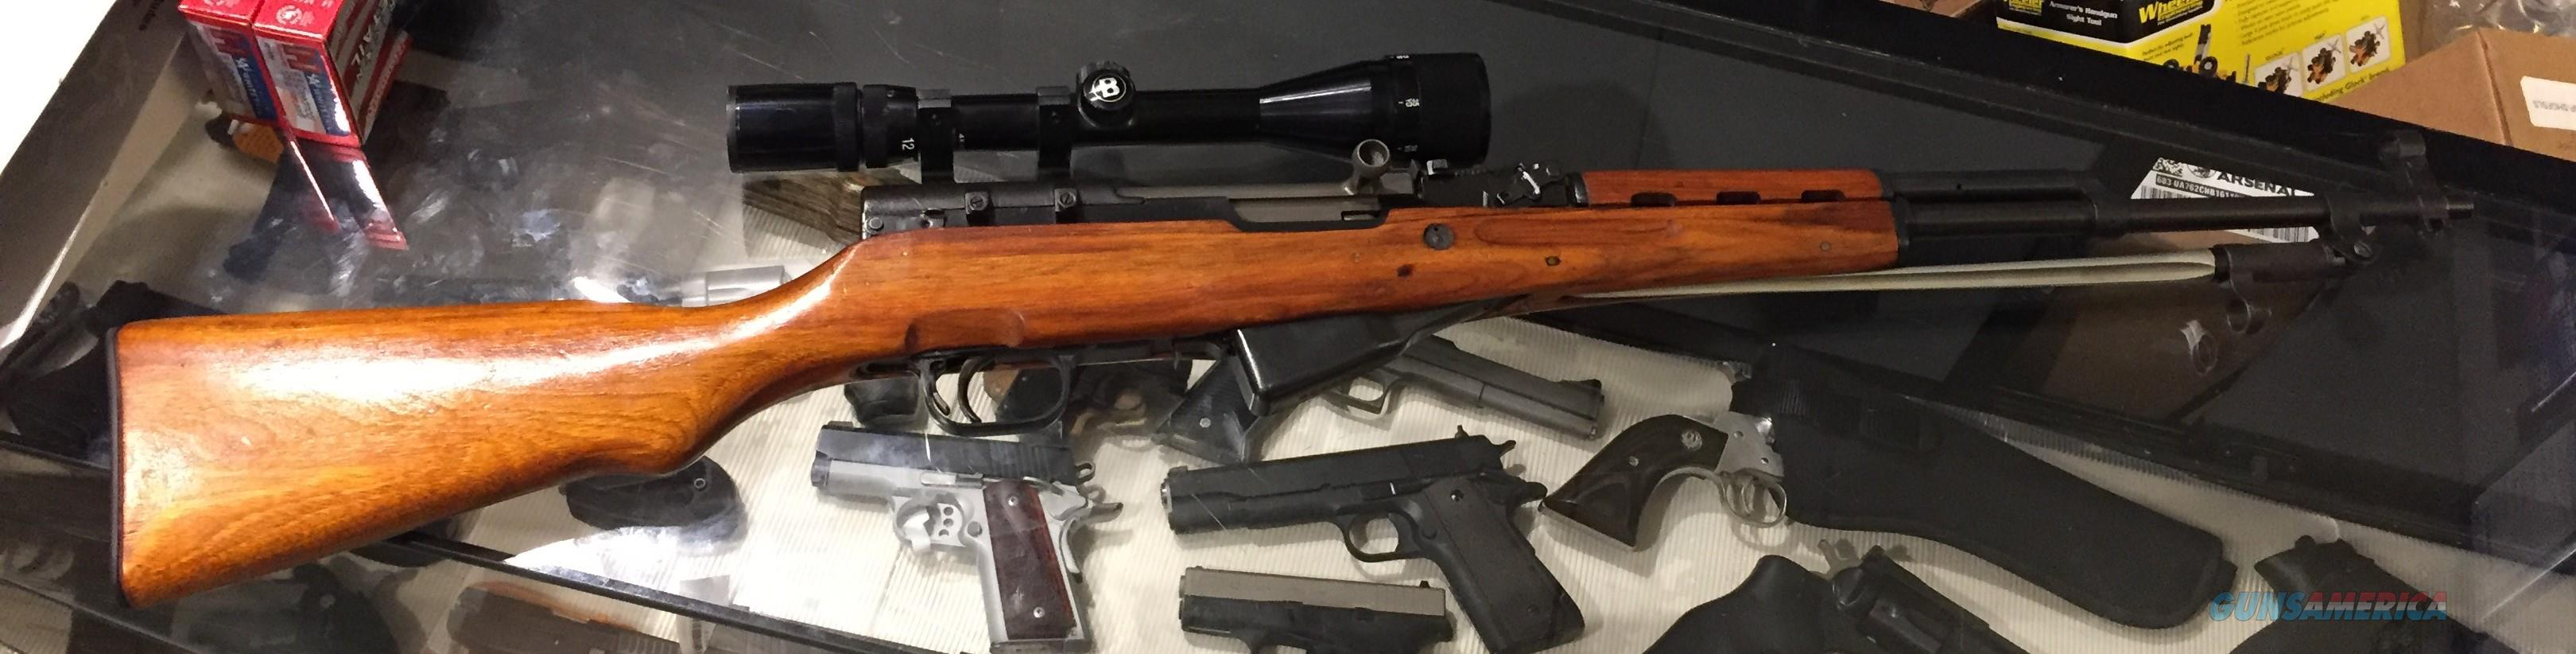 SKS in 7.62x39mm Norinco with bayonet and 4-12 scope in very good condition. No card fees added.  Guns > Rifles > SKS Rifles